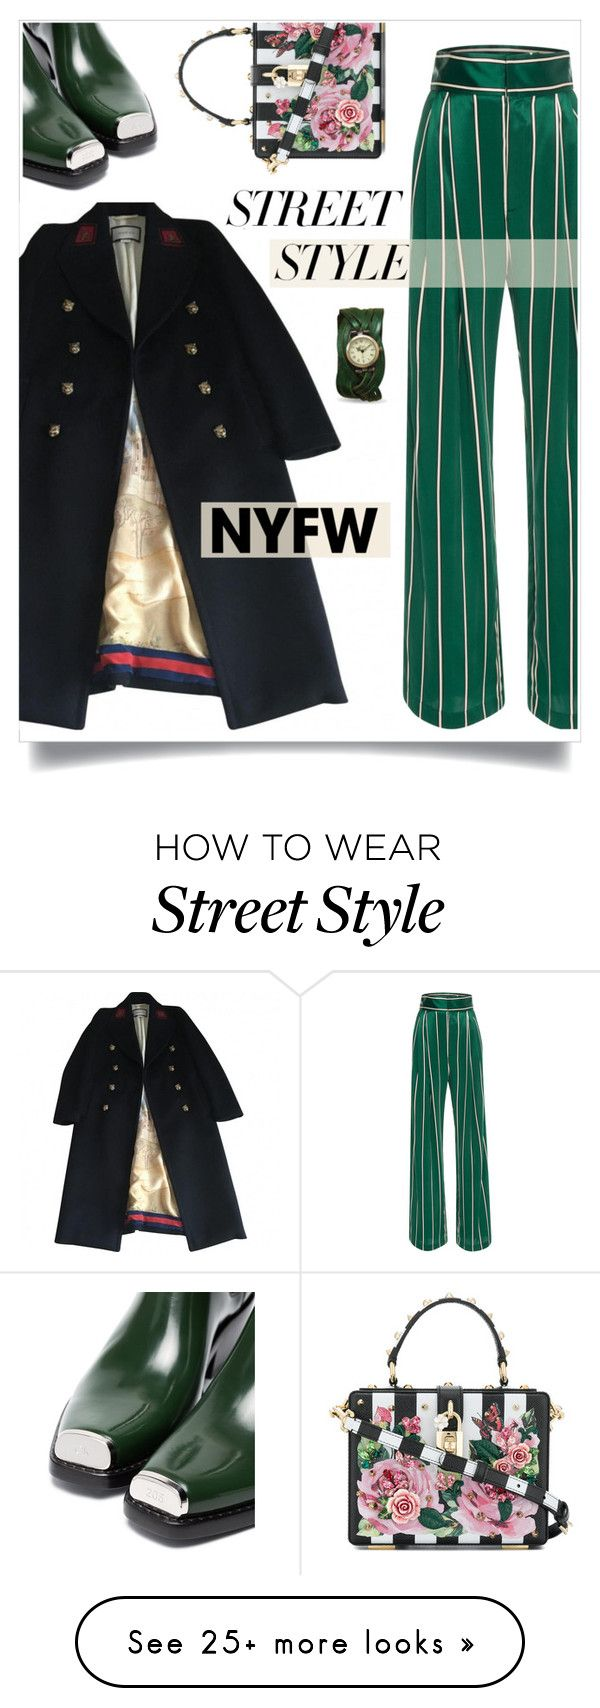 """NYFW: Street Style 2"" by gracecar3 on Polyvore featuring Calvin Klein 205W39NYC, Gucci, Dolce&Gabbana, contestentry and nyfwstreetstyle"